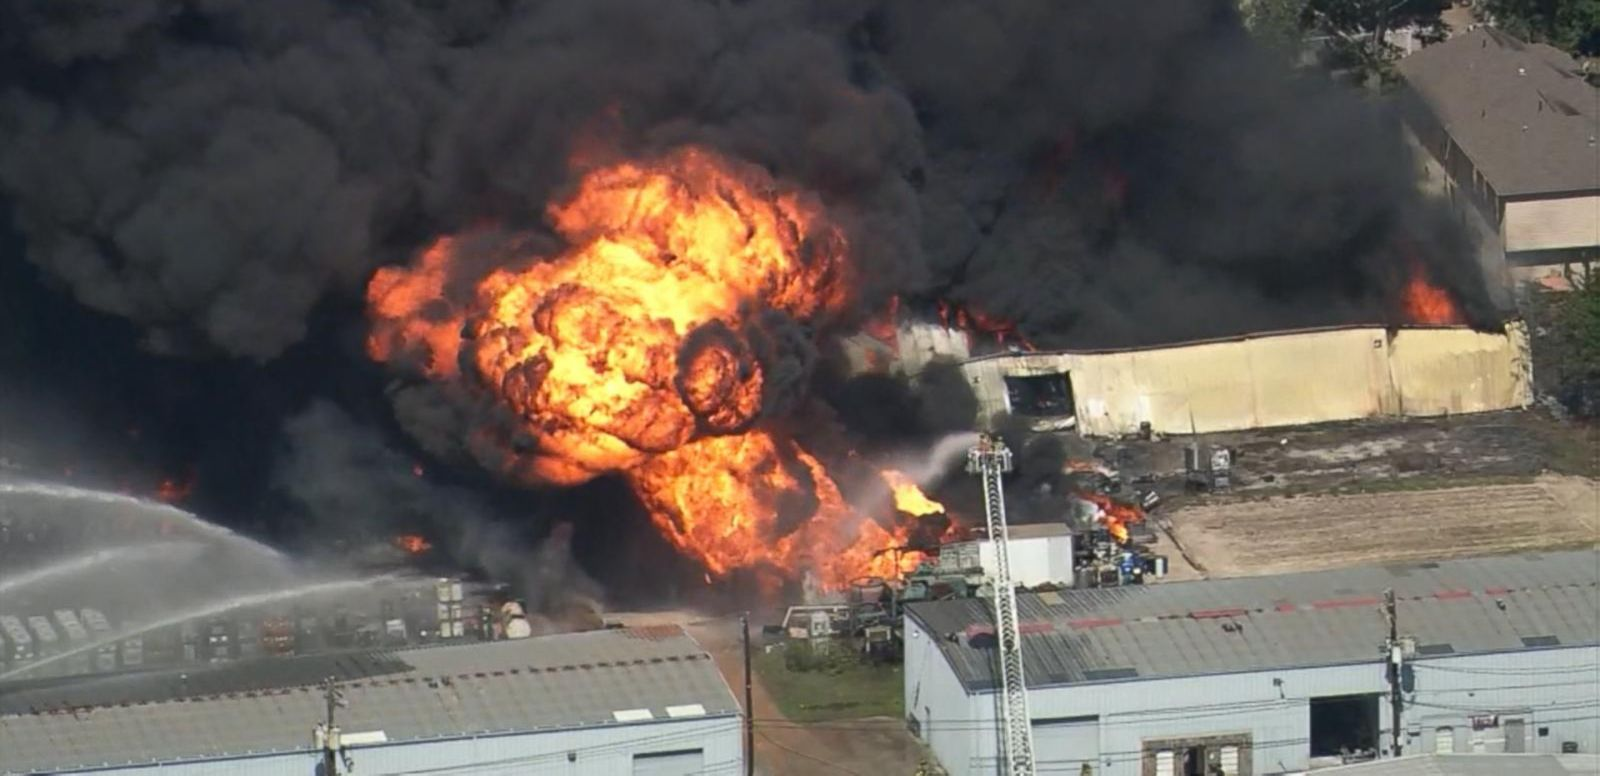 A 4-alarm fire at a business in west Houston sent flames and heavy black smoke into the air.